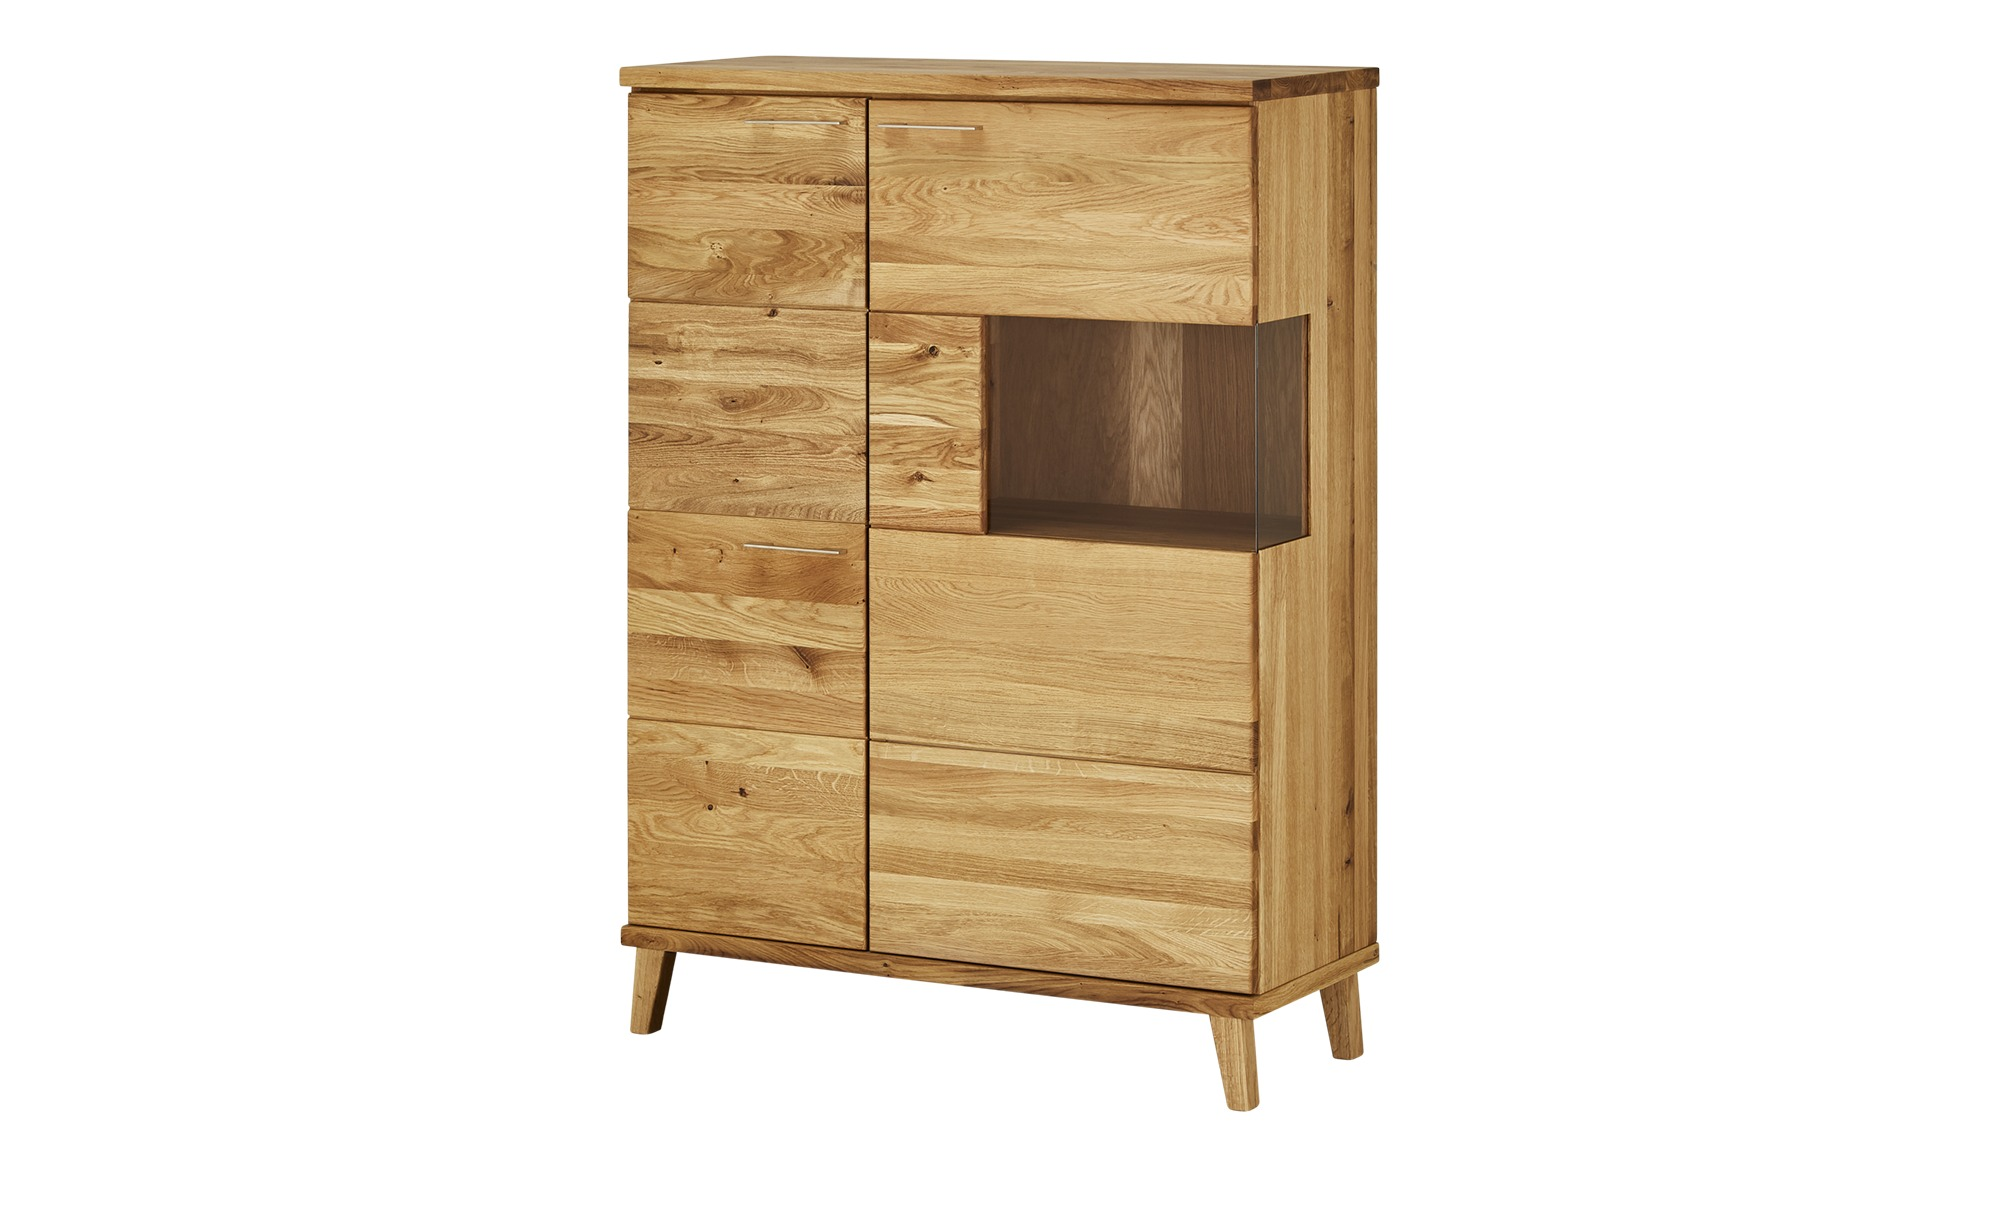 Wohnwert Highboard  Angus ¦ holzfarben ¦ Maße (cm): B: 101 H: 139 T: 41 Kommoden & Sideboards > Highboards - Höffner